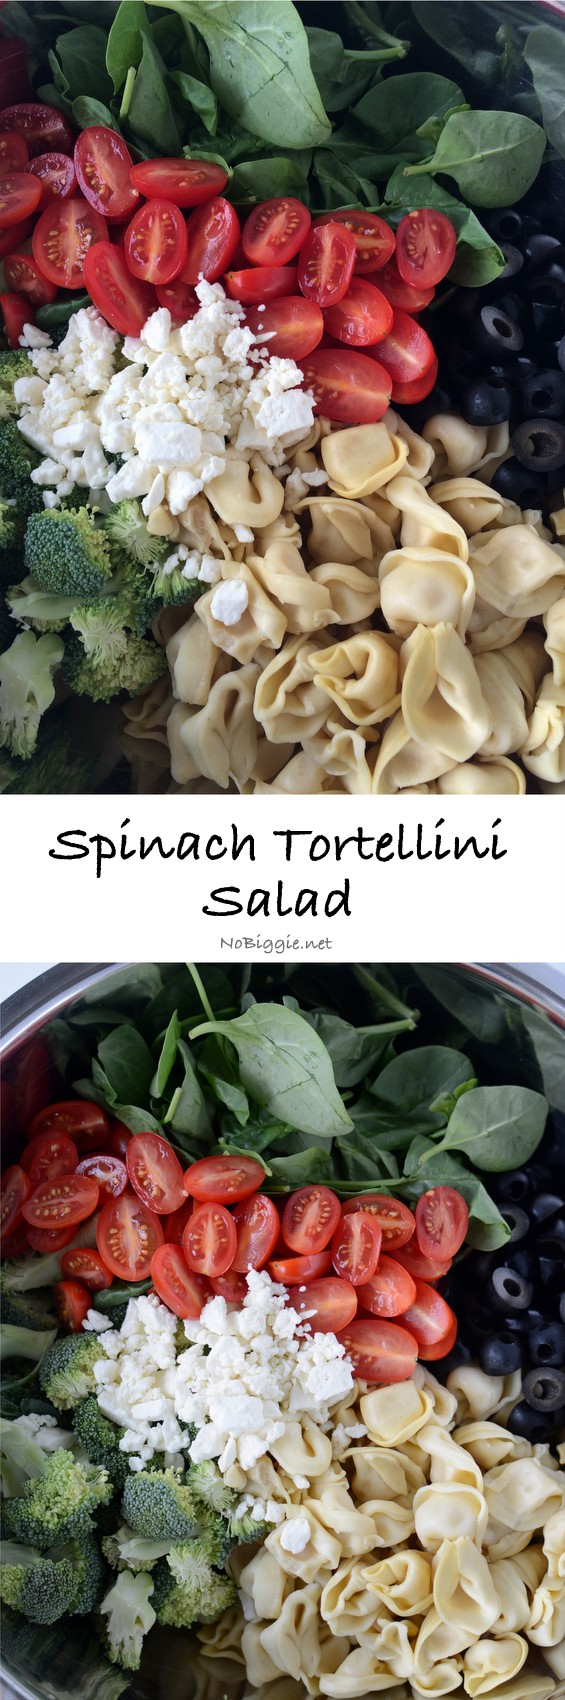 Spinach Tortellini Salad - this salad is awesome! | NoBiggie.net